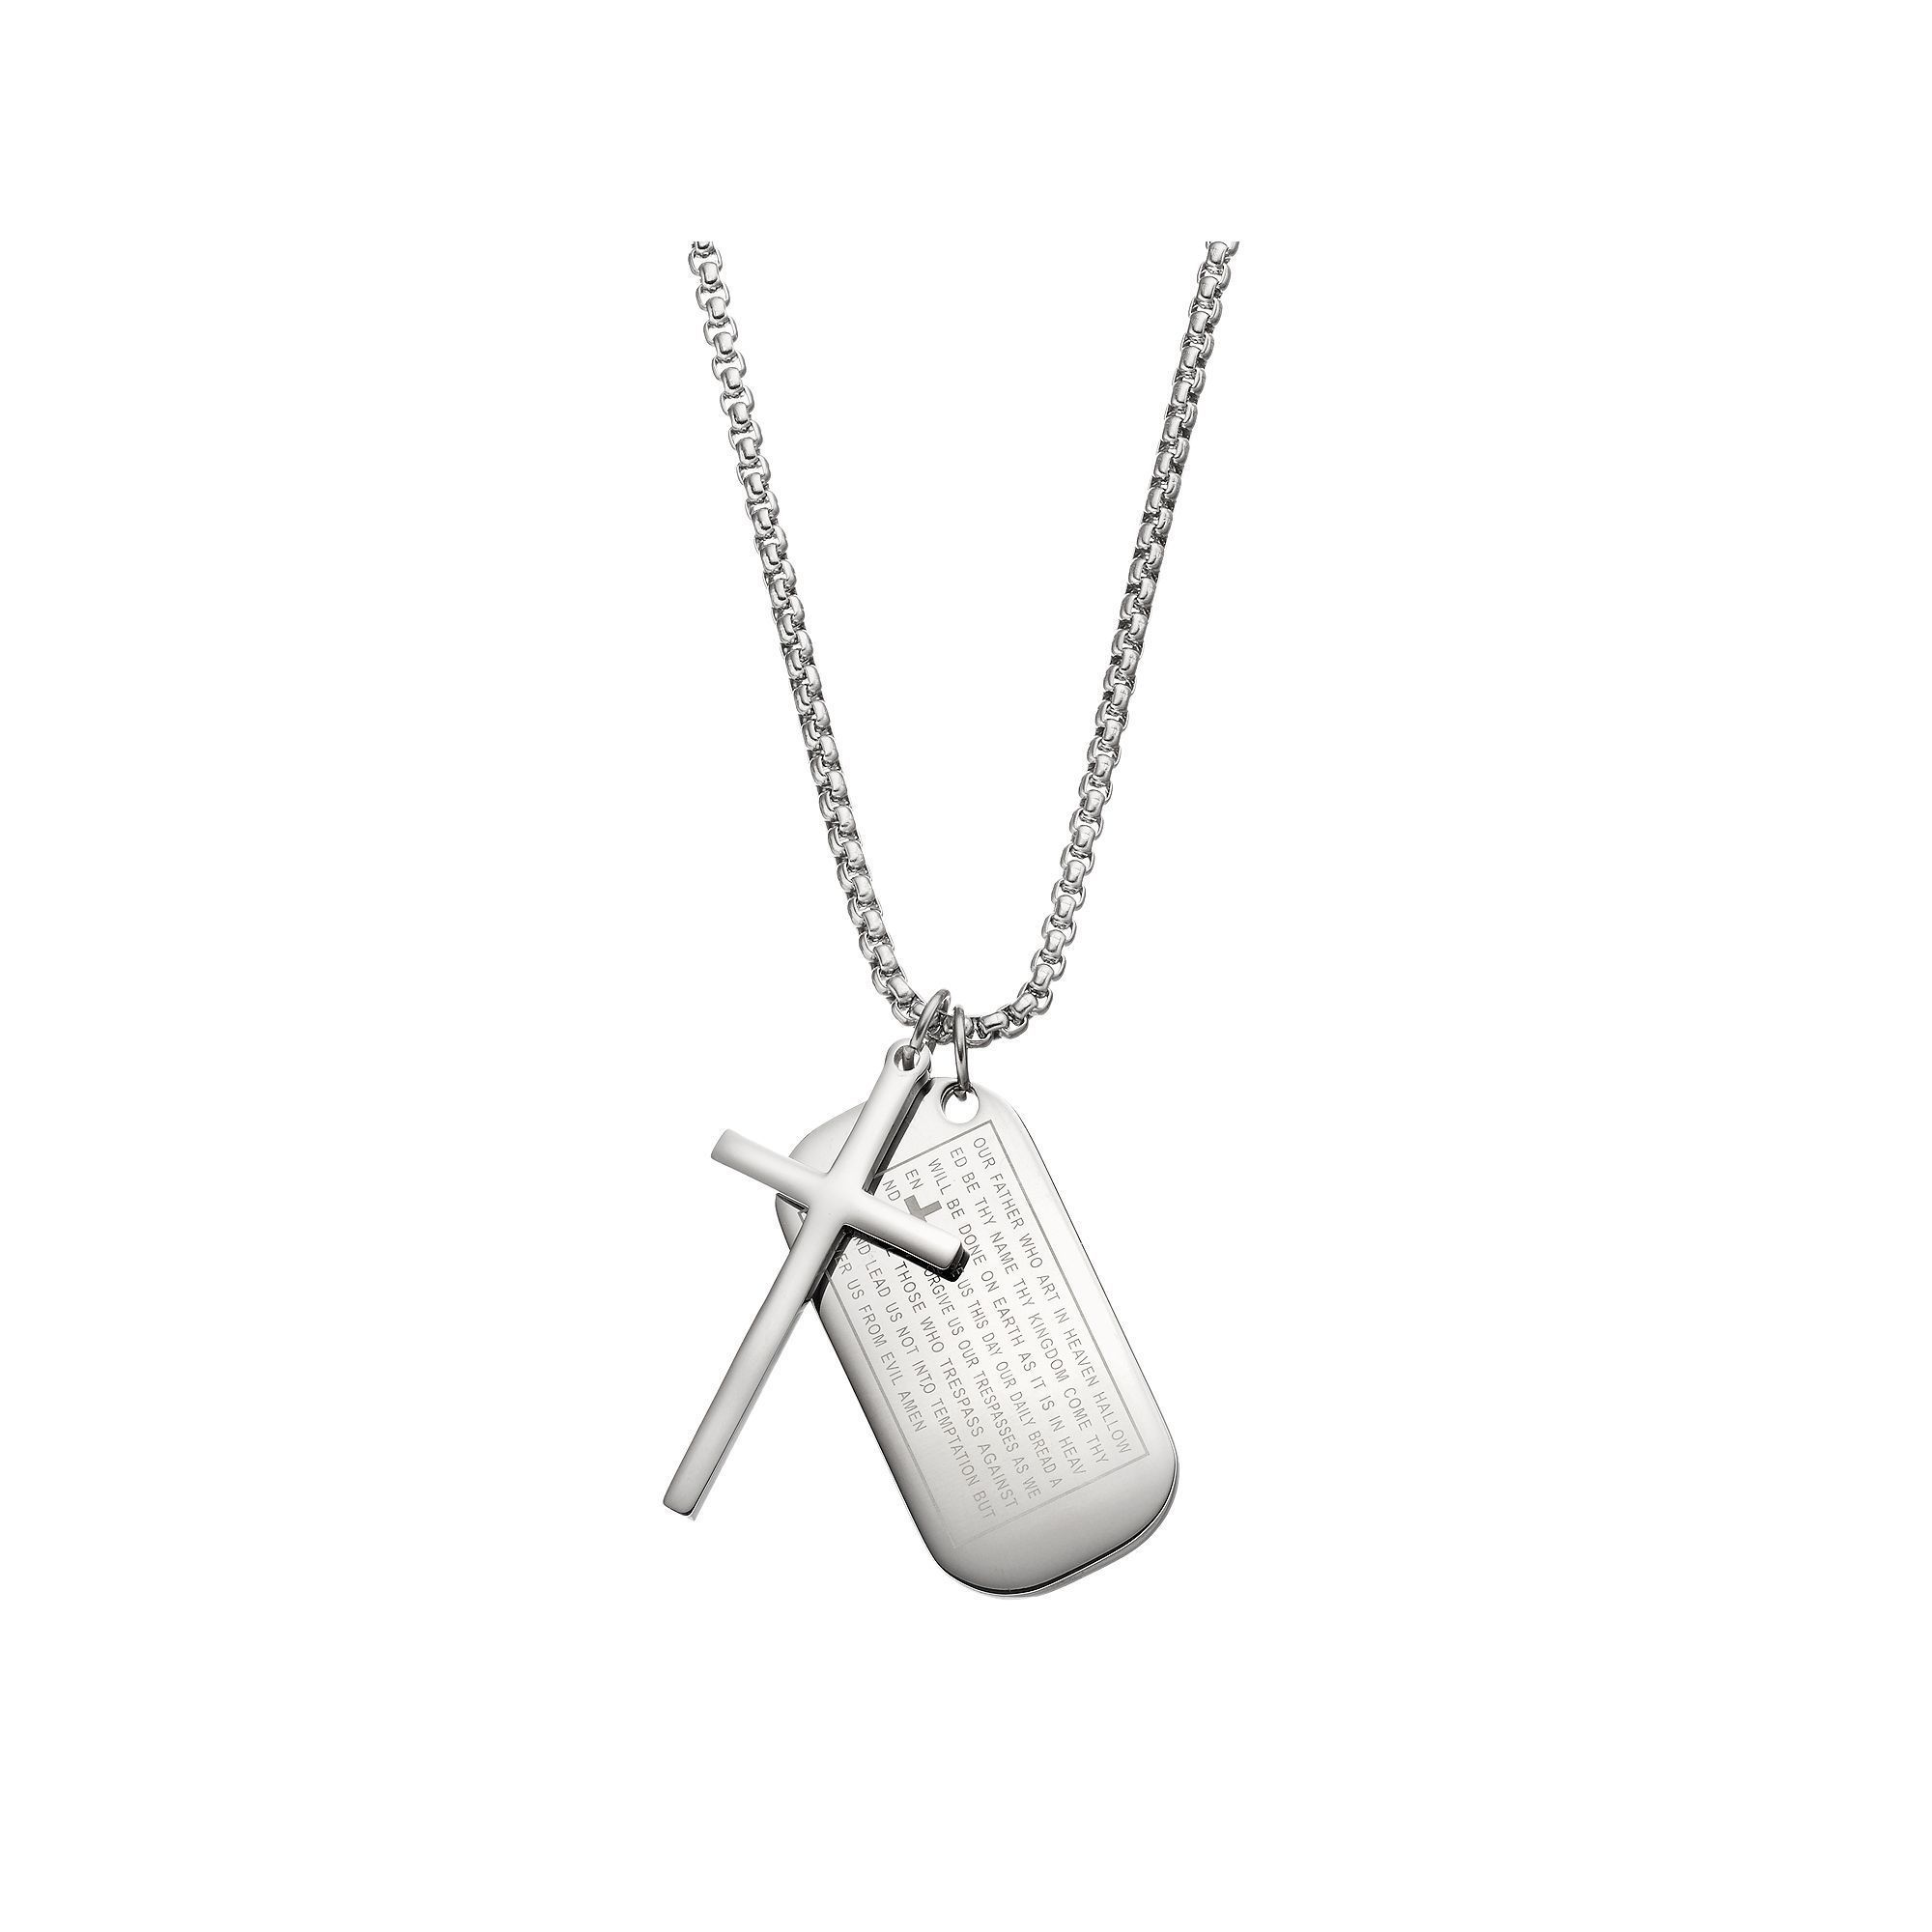 Image Result For 1913 Men S Accessories Stainless Steel Stainless Steel Necklace Bracelets For Men Dog Tag Necklace